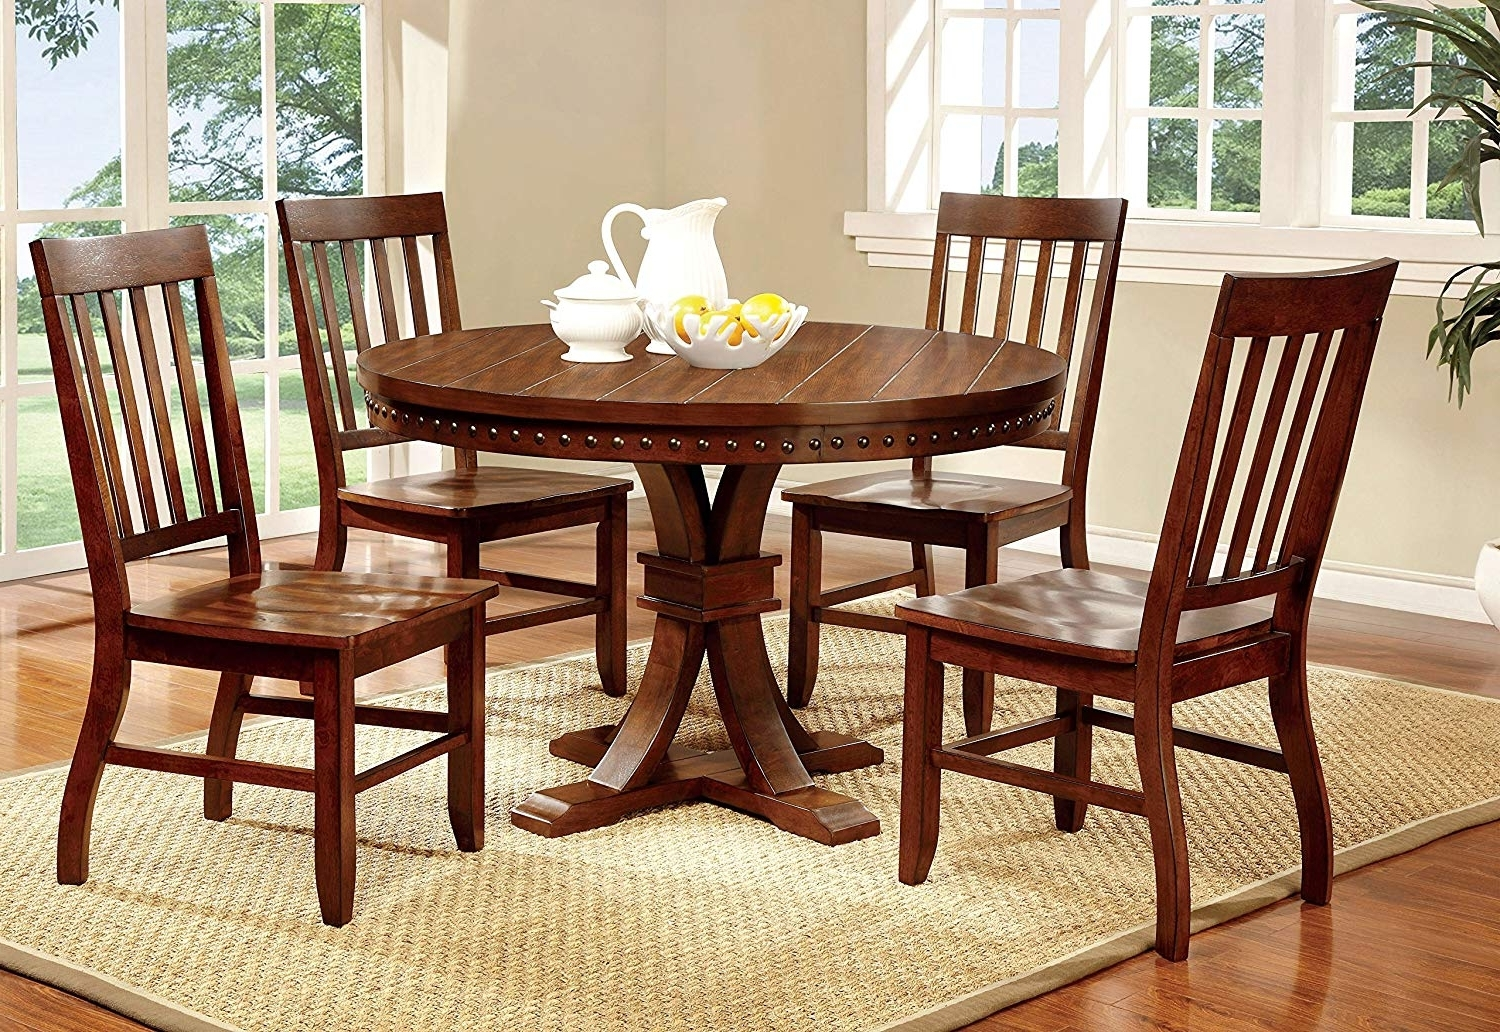 Famous Oak Dining Sets Regarding Amazon – Furniture Of America Castile 5 Piece Transitional Round (View 6 of 25)